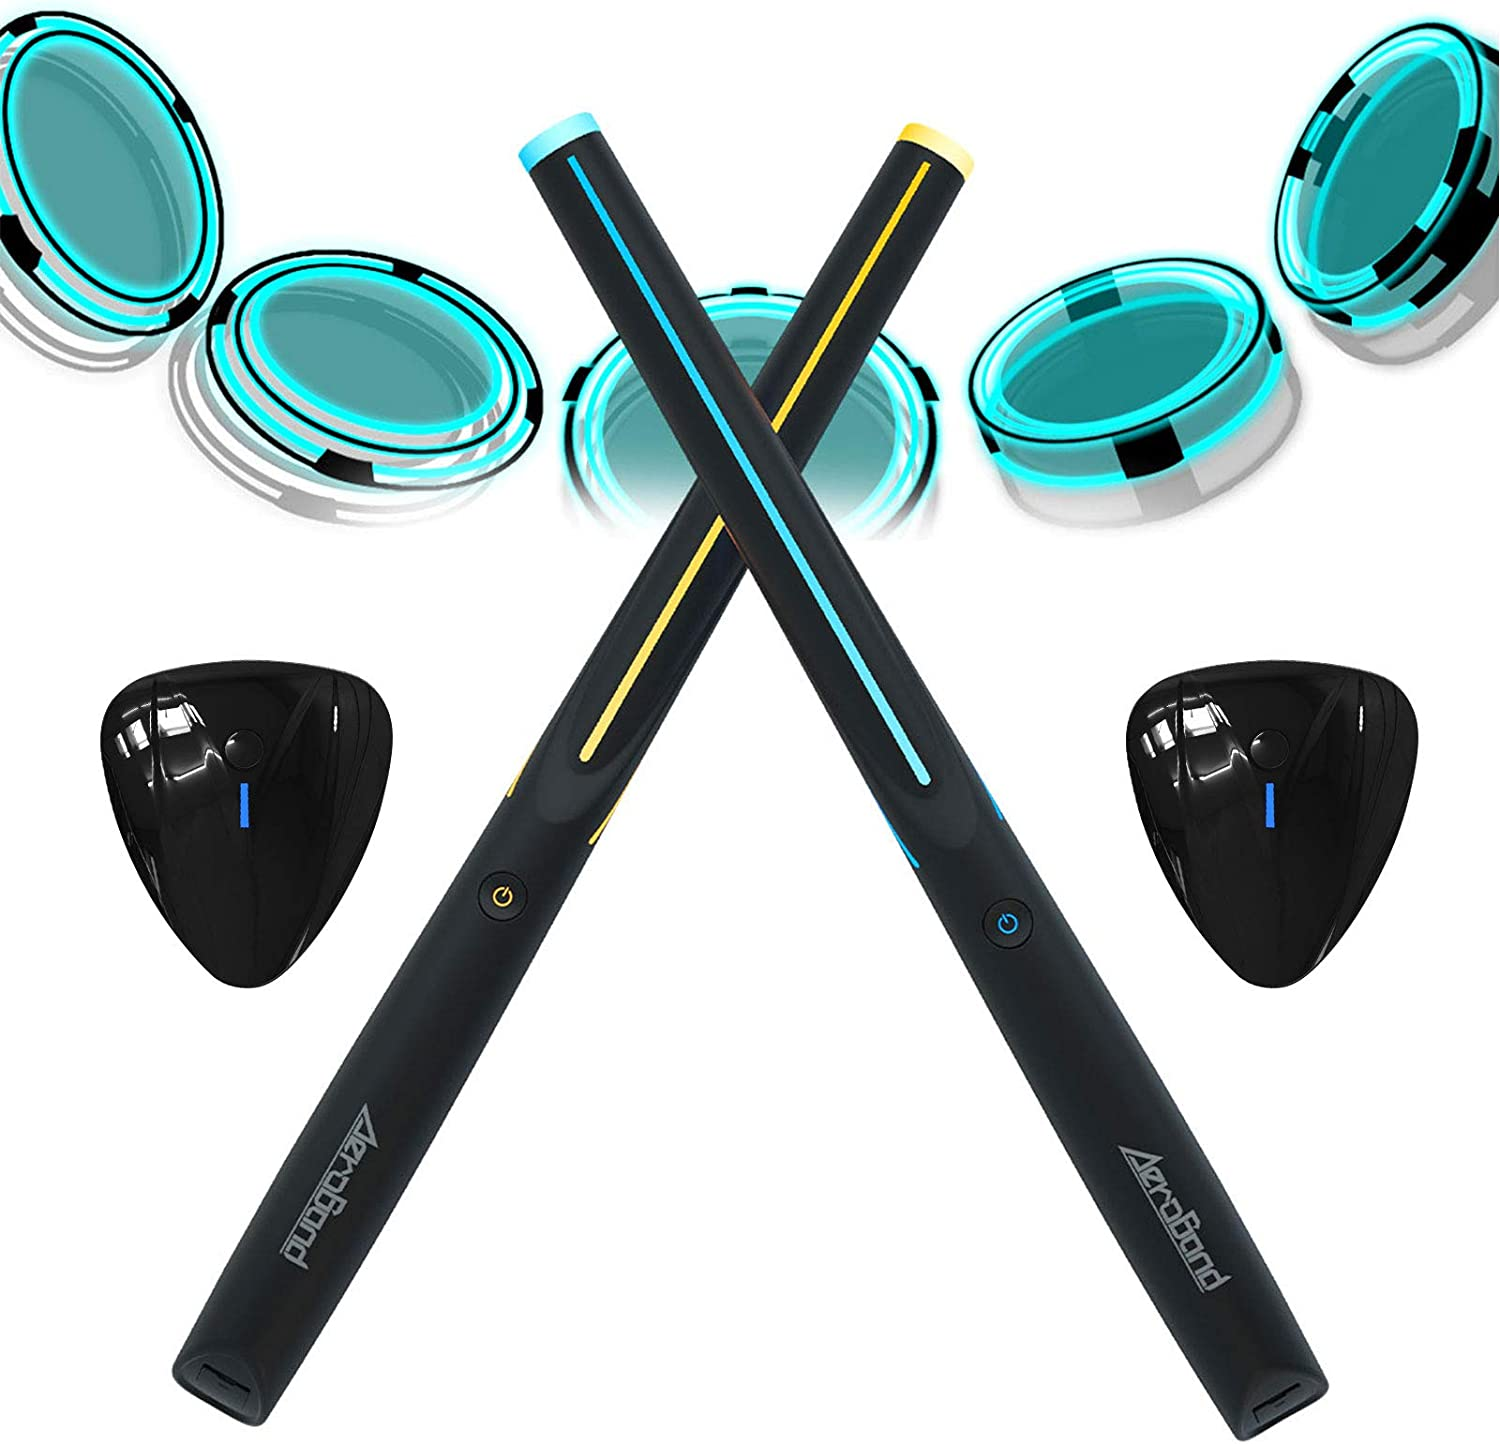 AEROBAND Air Drum Sticks Set Drums Financial Super Special SALE held sales sale 4 Electronic Mode Bluetooth